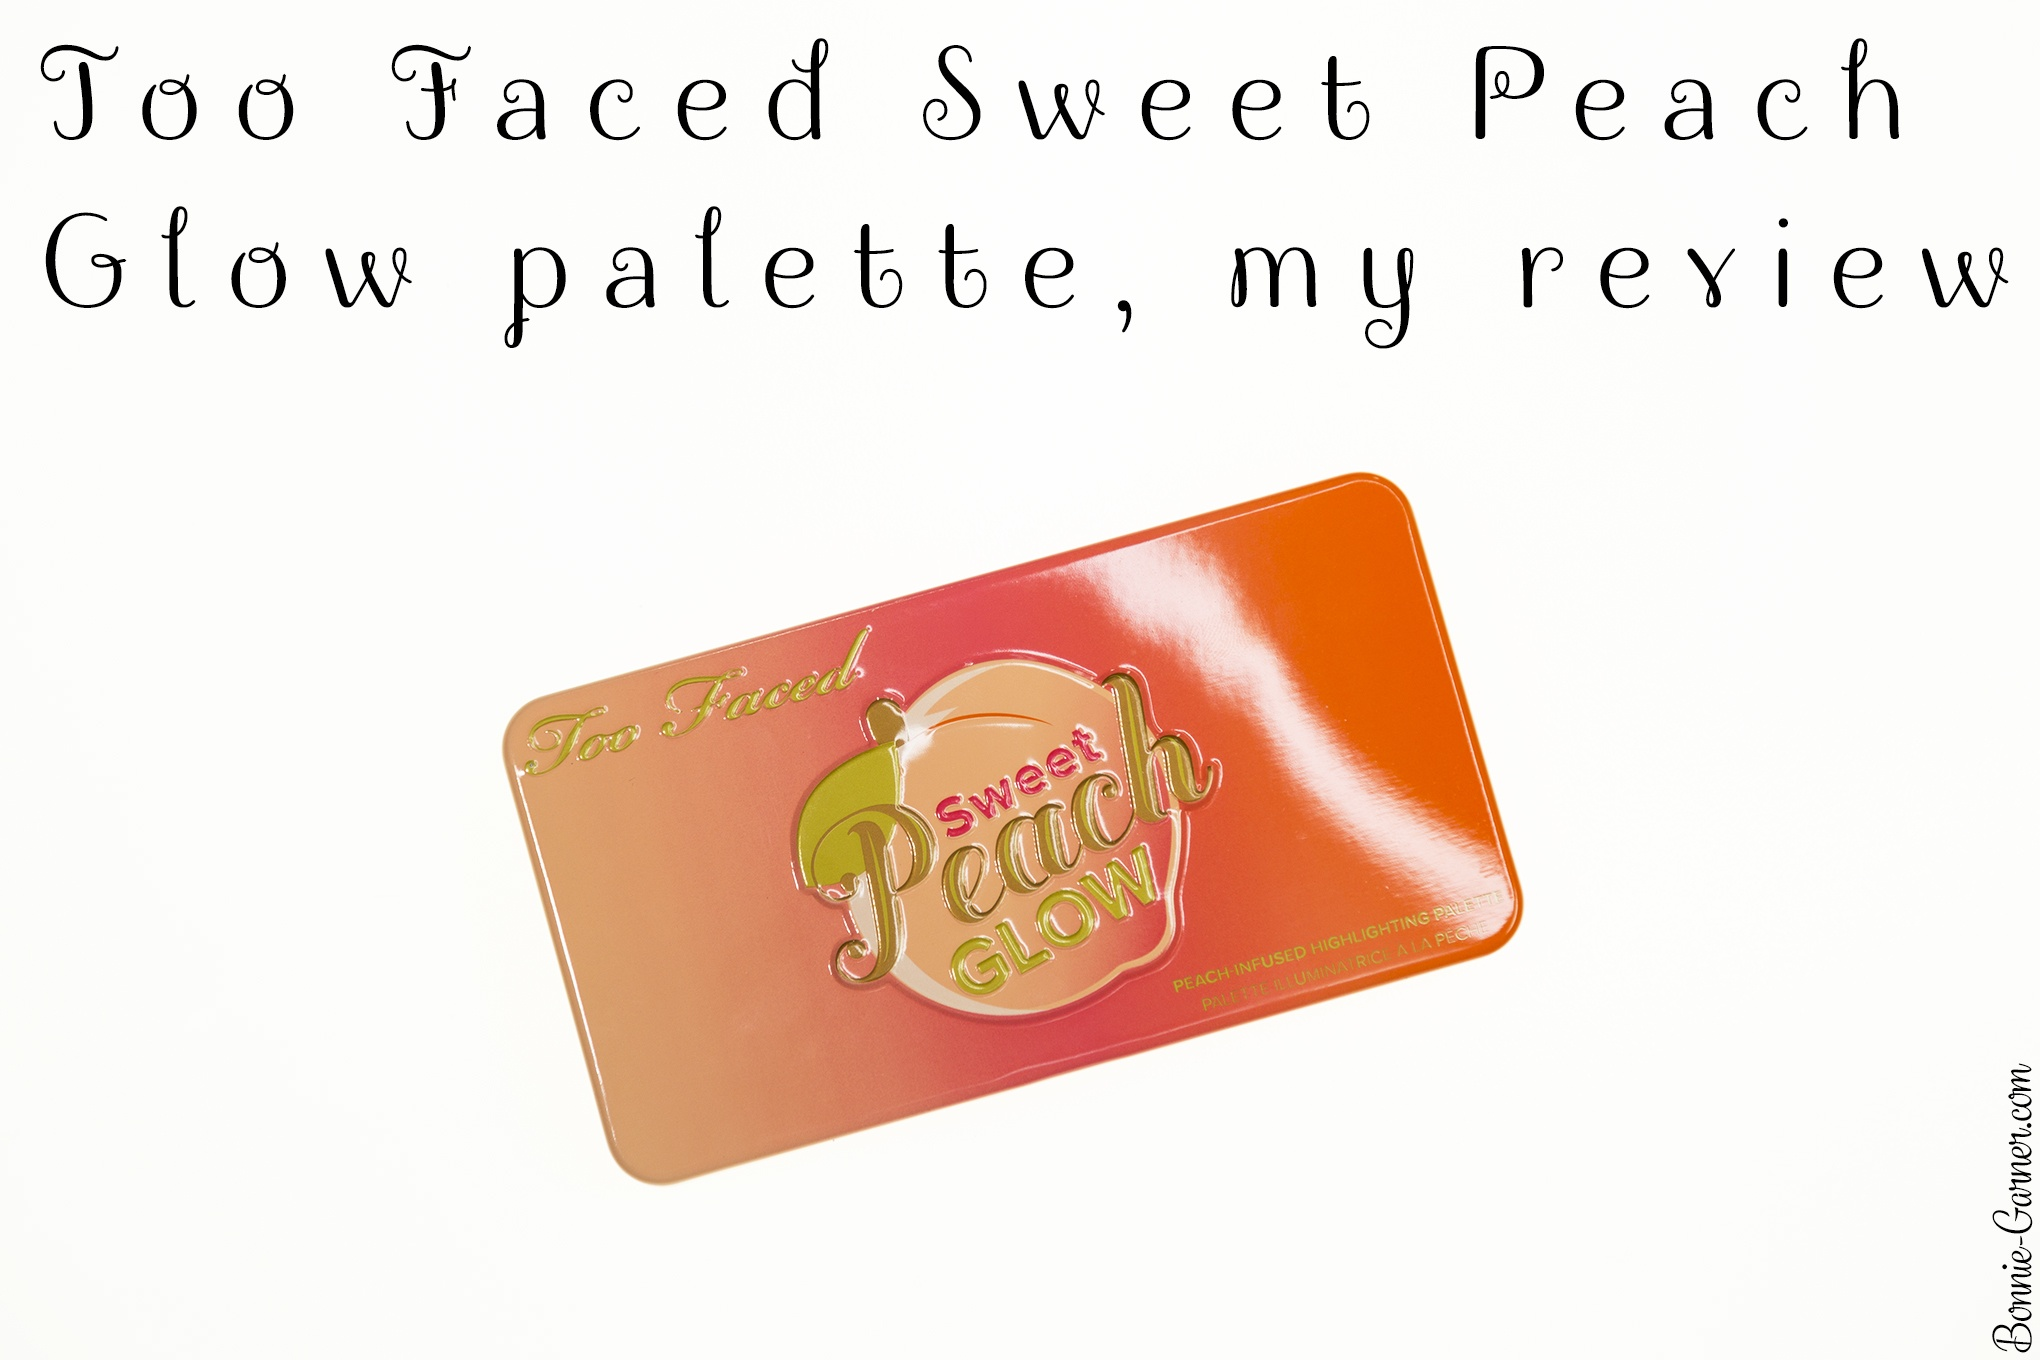 Too Faced Sweet Peach Glow palette, my review